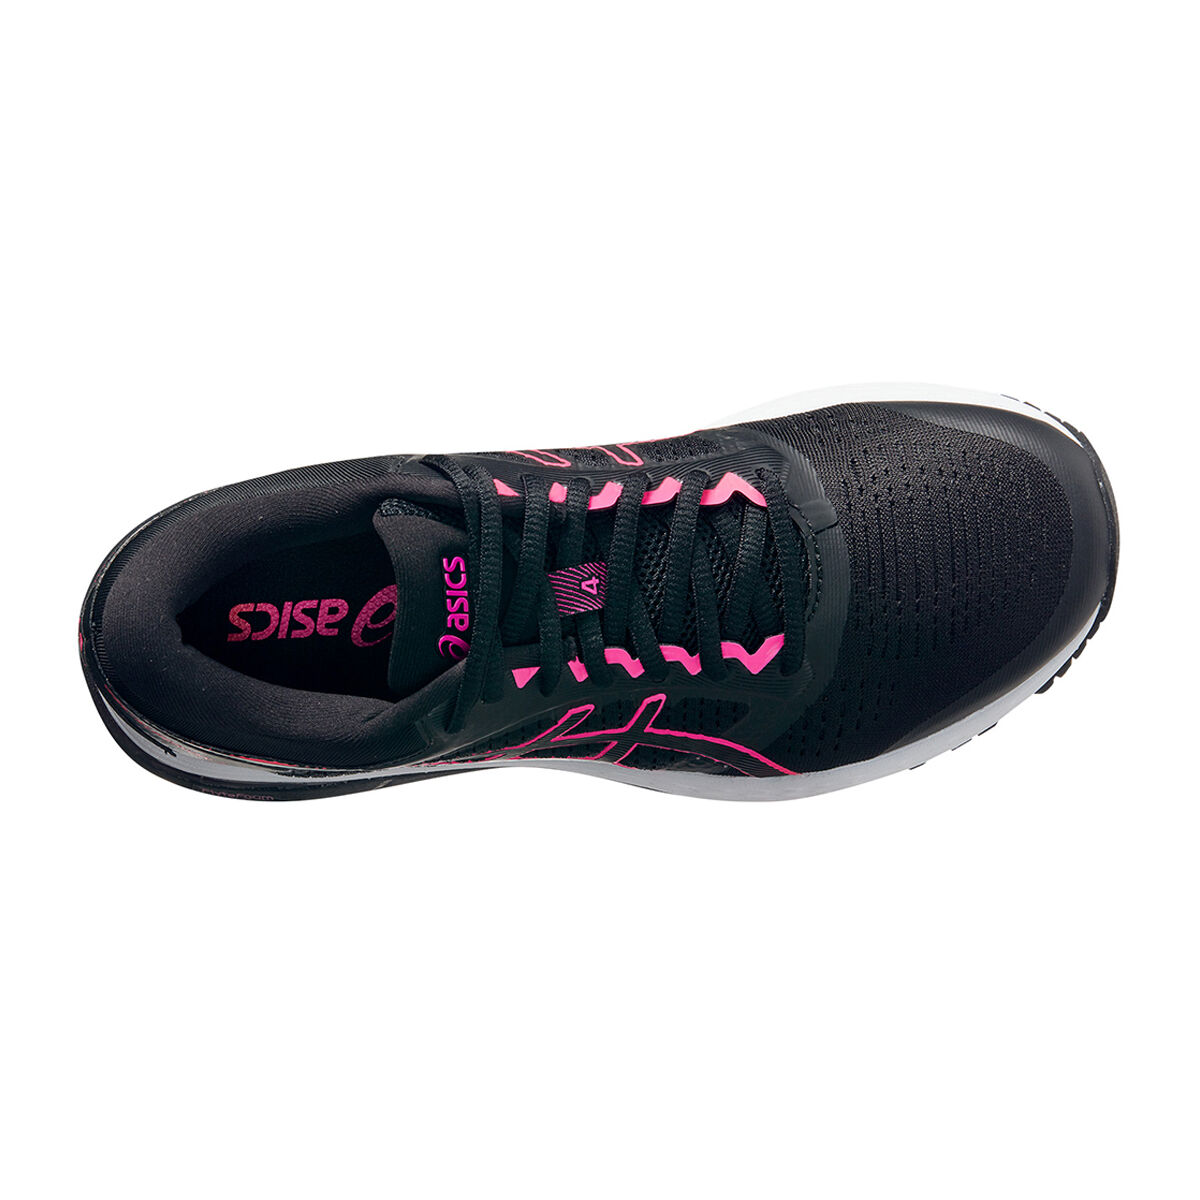 Asics GEL Superion 4 Womens Running Shoes   7south Sport